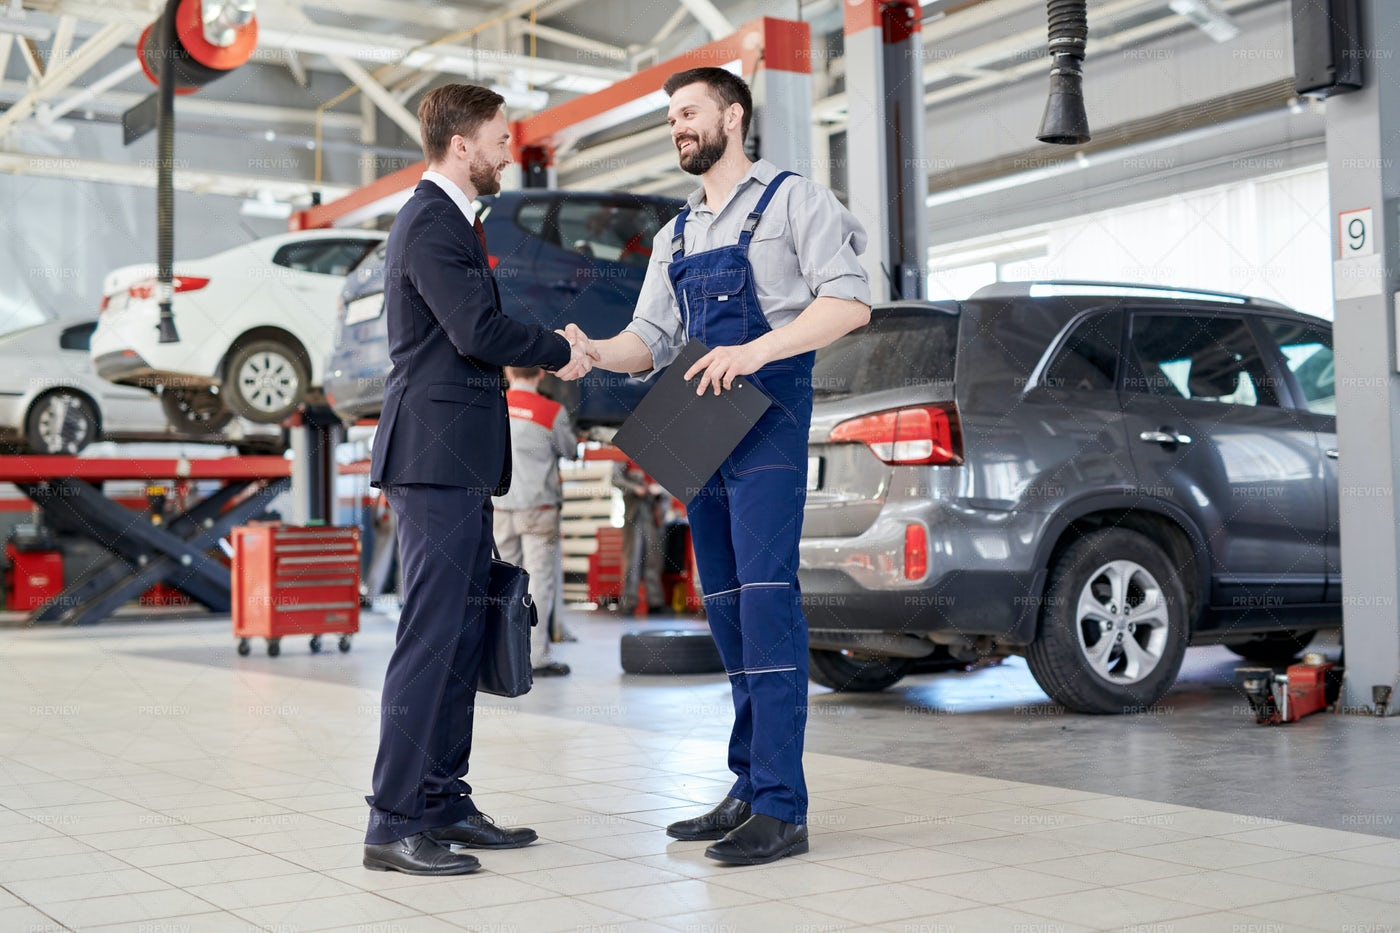 Worker Shaking Hands With Client In...: Stock Photos